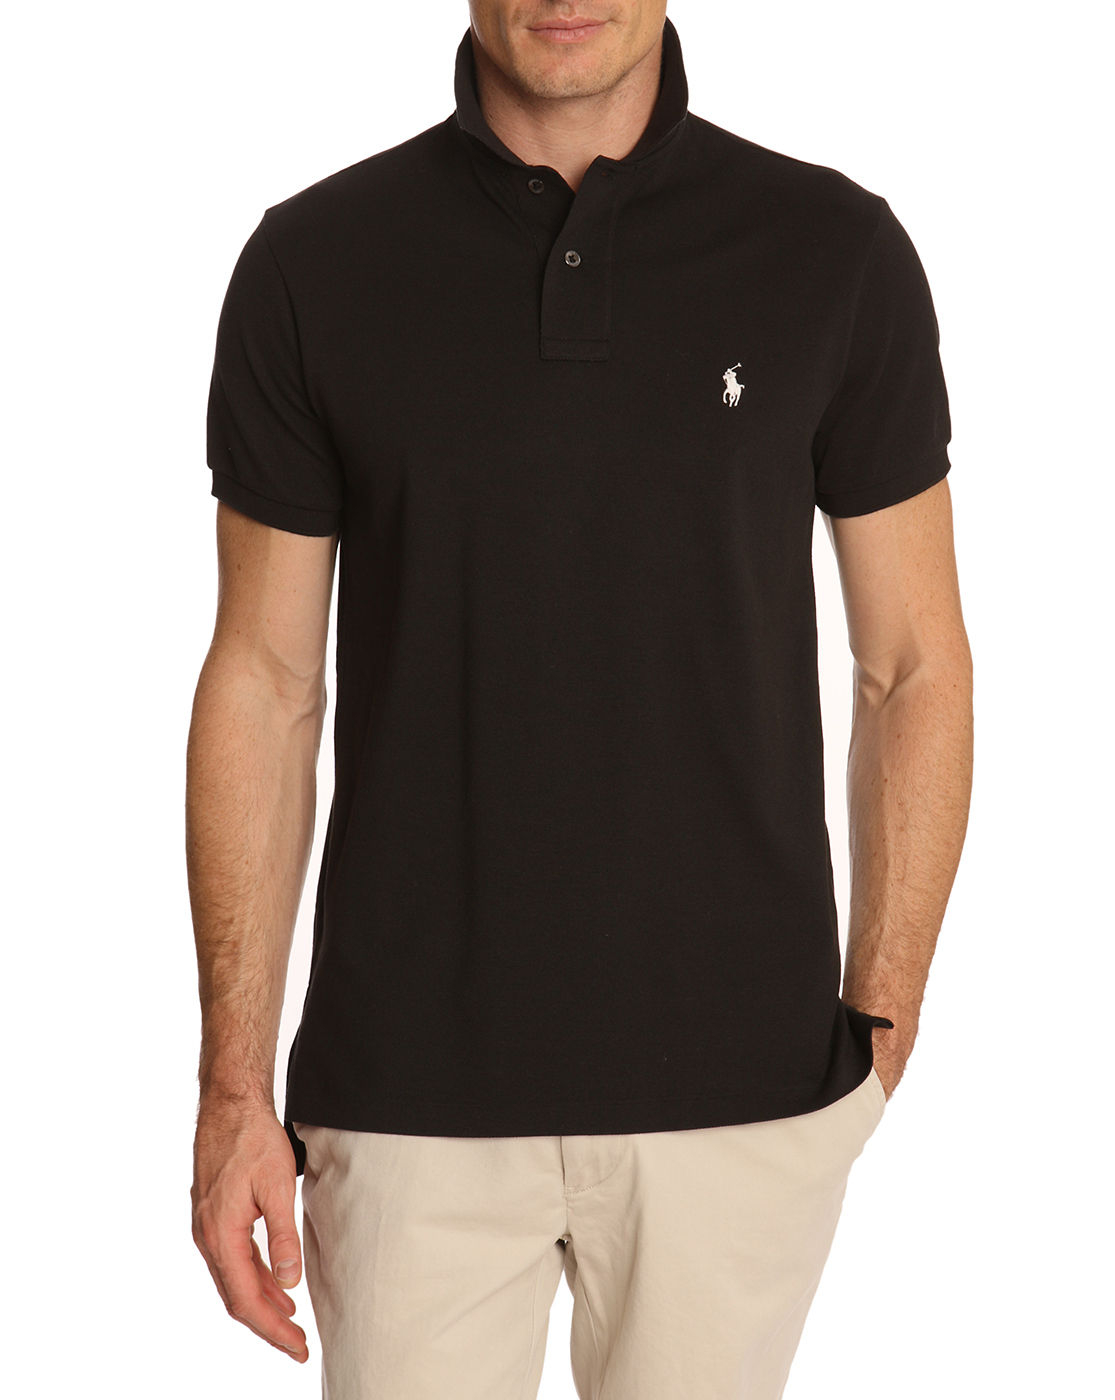 Polo ralph lauren black slim fit stretch polo shirt in Man in polo shirt